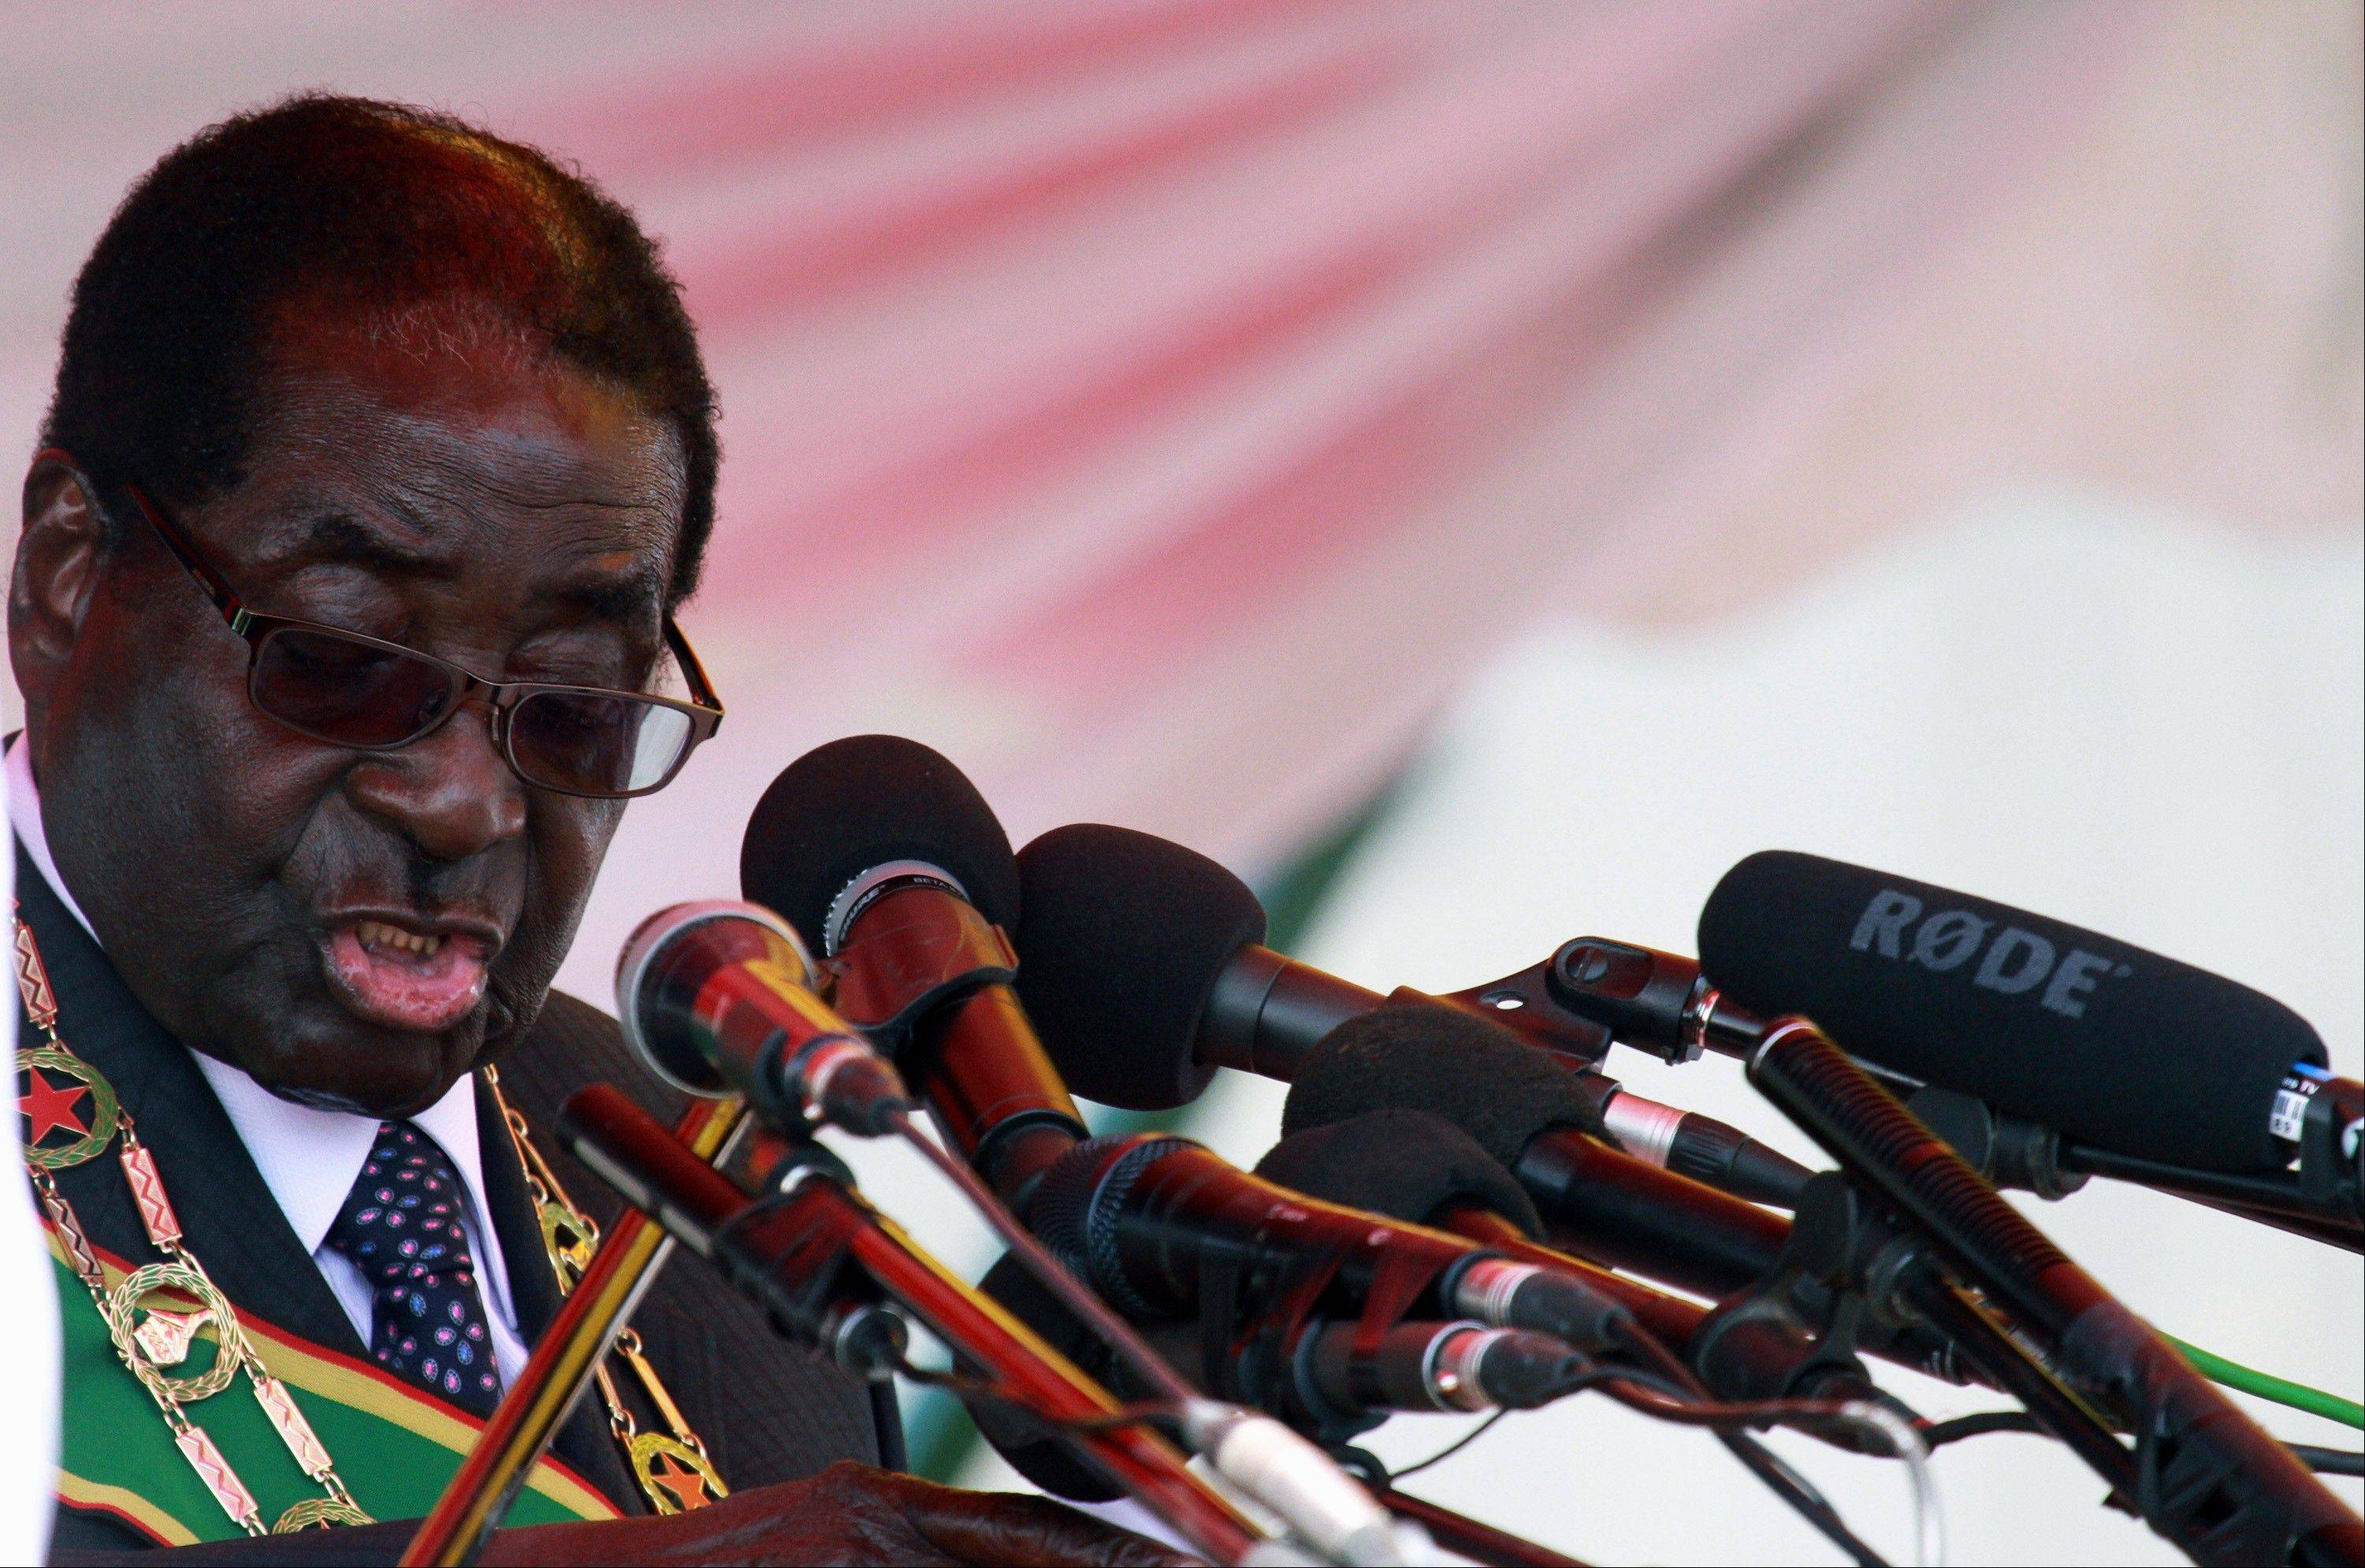 Zimbabwean President-elect Robert Mugabe reads his speech during the country�s commemoration of Heroes� Day in Harare, Monday. Zimbabwe�s longtime president says his party will not yield its victory in elections that although disputed were endorsed by African observers and conducted without the violence that marred previous polls.